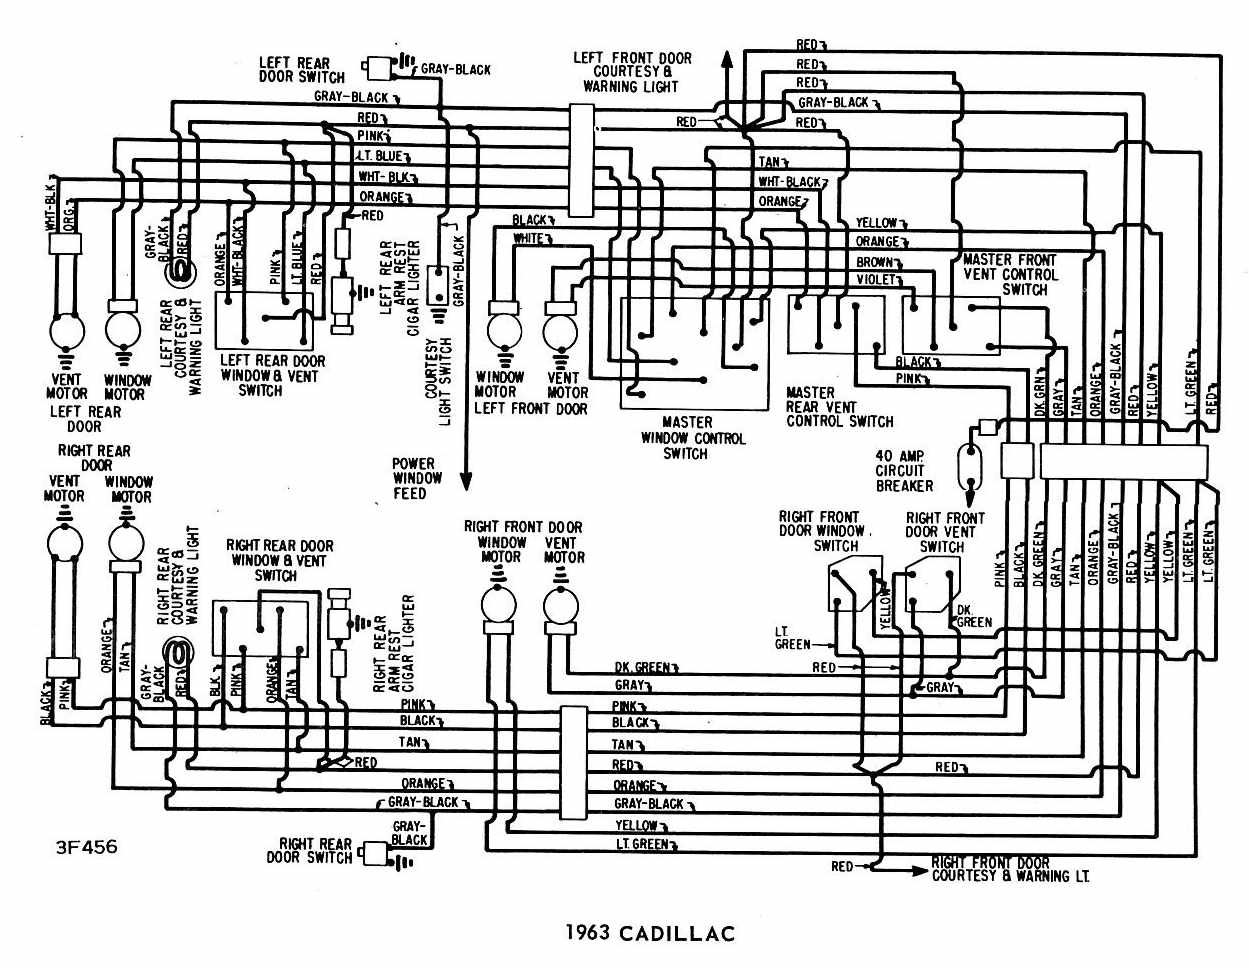 Cadillac+1963+Windows+Wiring+Diagram cadillac 1963 windows wiring diagram all about wiring diagrams 1953 chevy bel air wiring diagram at reclaimingppi.co